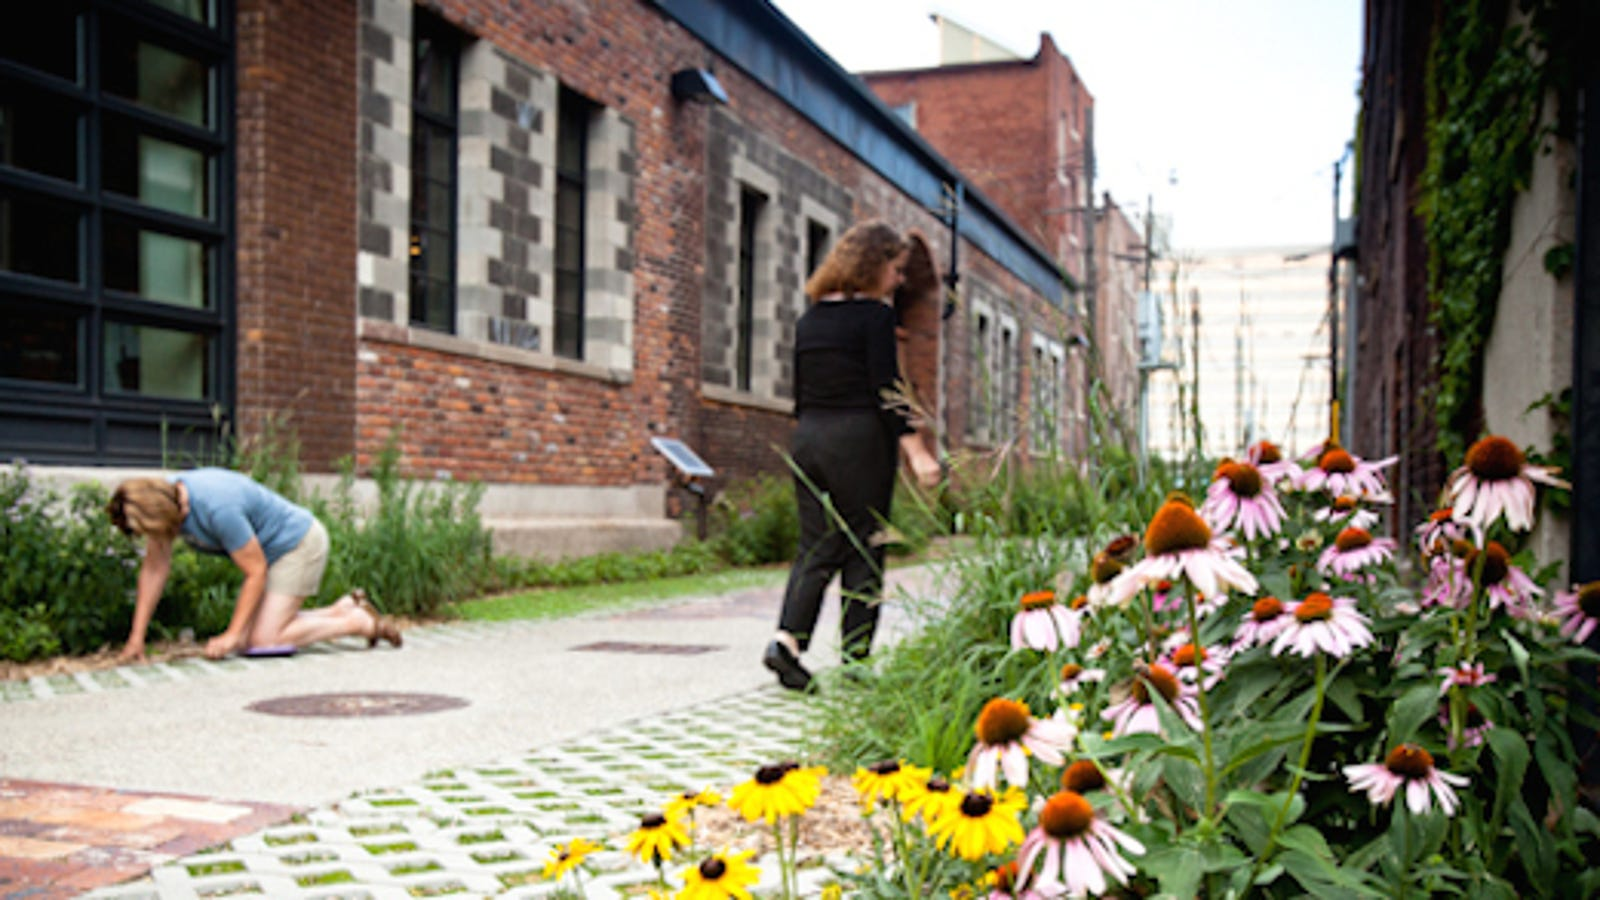 Elegant How Alleys Are Becoming Pathways To Urban Revitalization